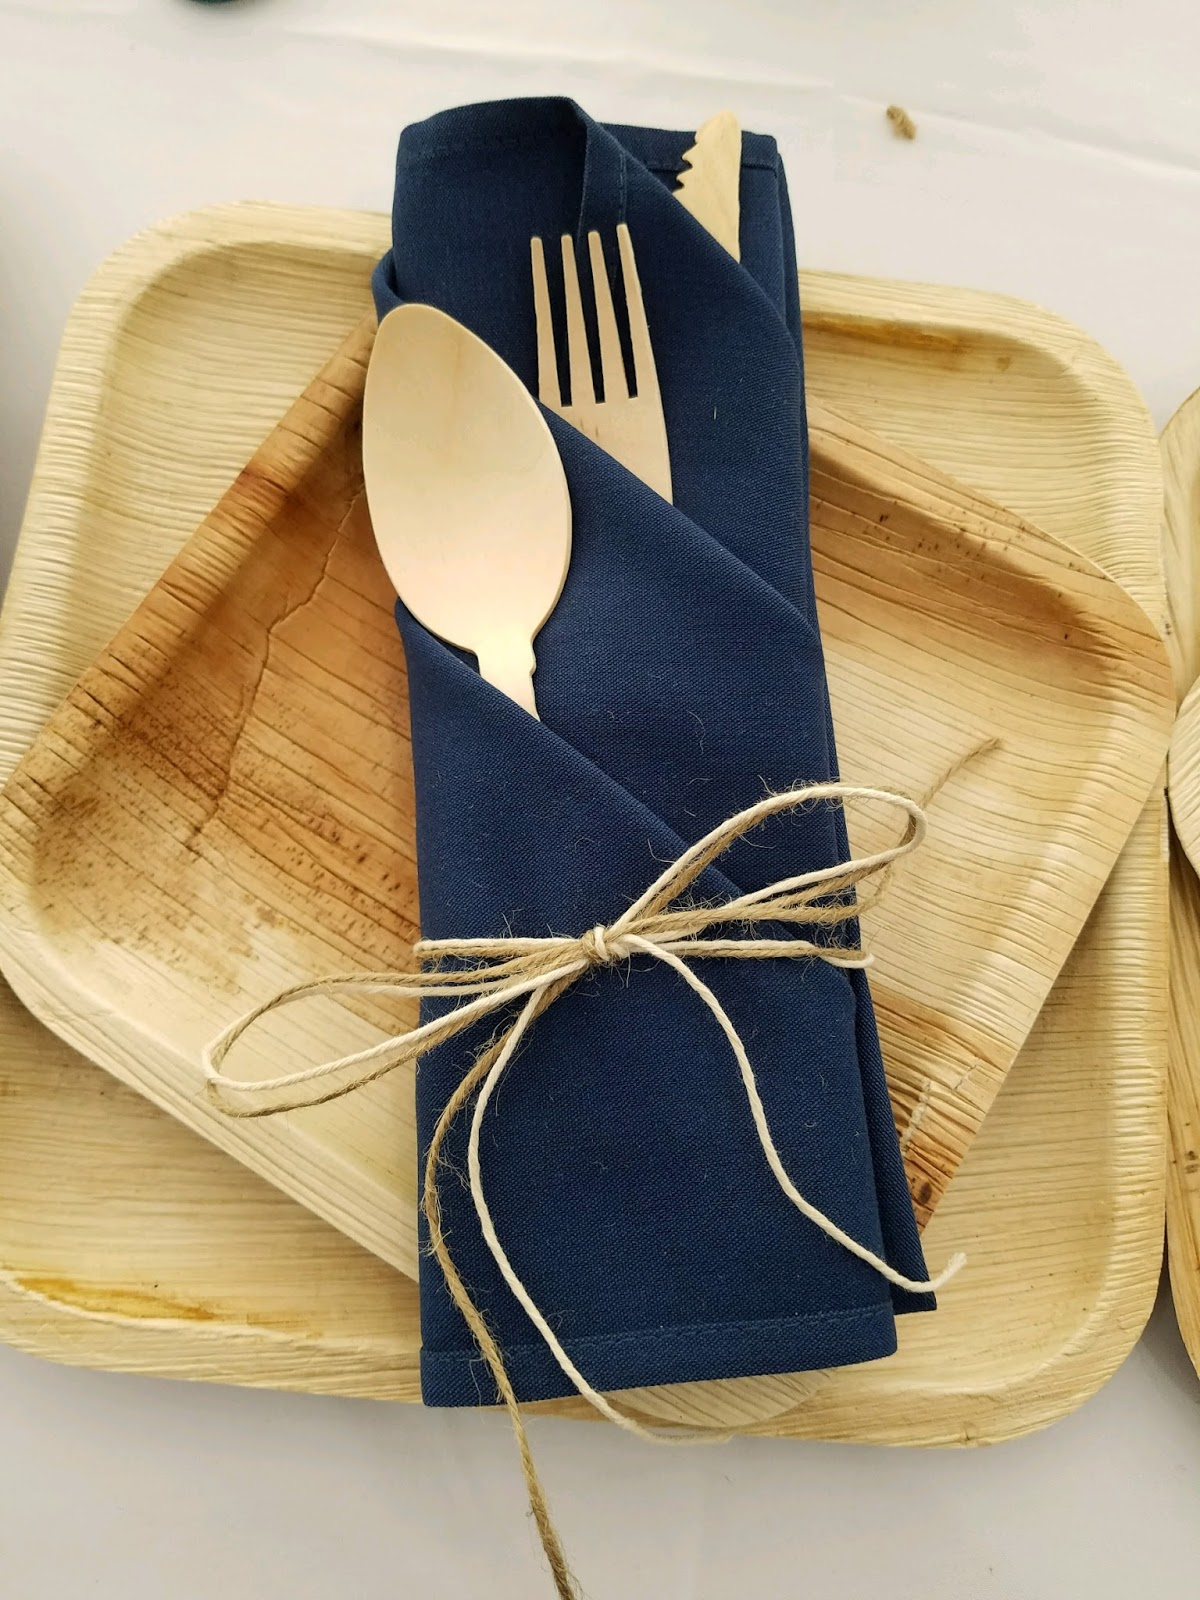 palm leaf wedding plates purchased from webstaurantstore.com and wooden utensils from confetti momma party